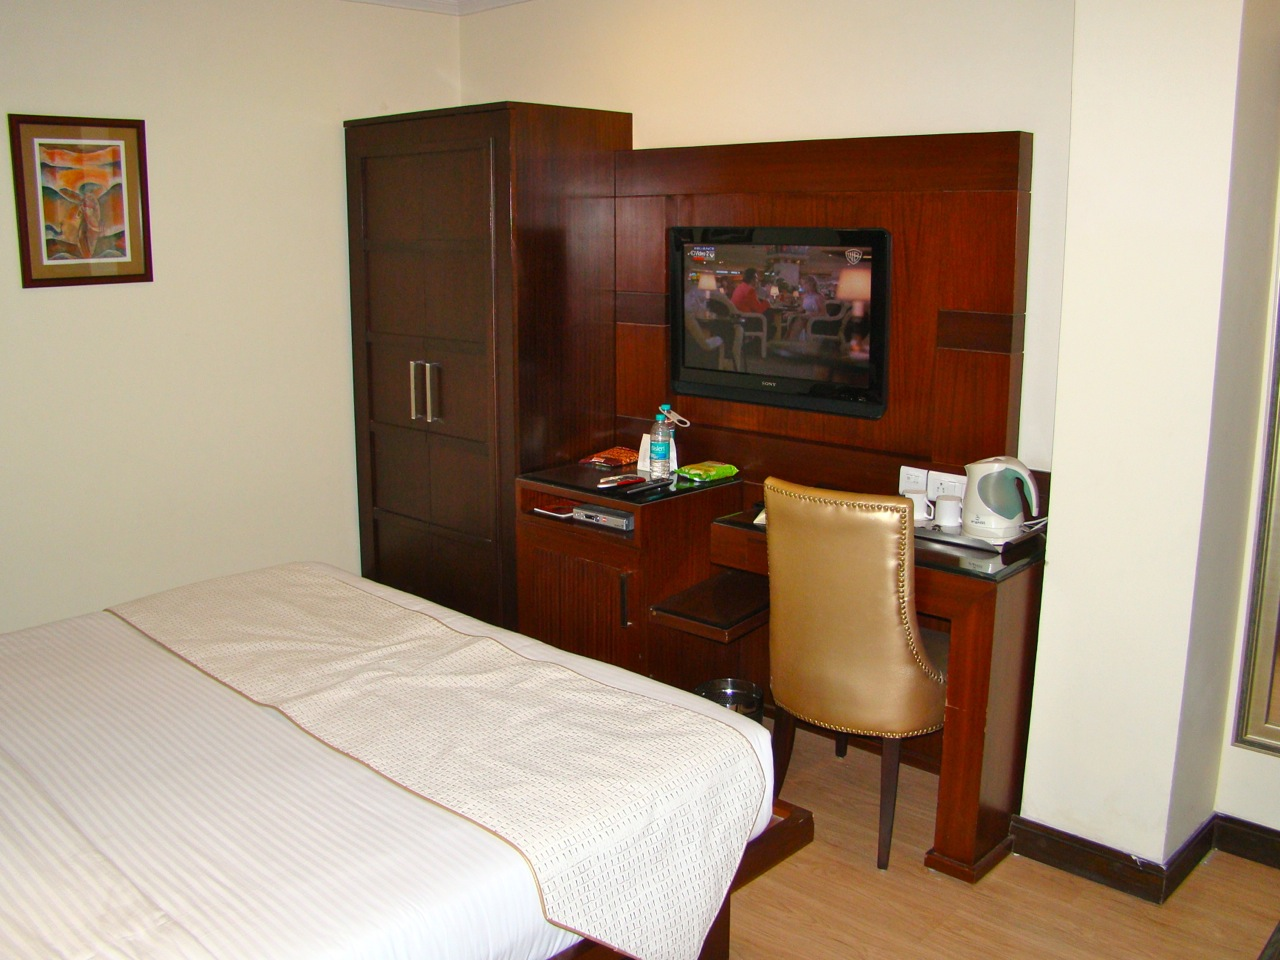 Hotels In Kalkaji,Hotels In Green Park,Hotels In Safdarjung Enclave,Budget Hotels In Defence Colony